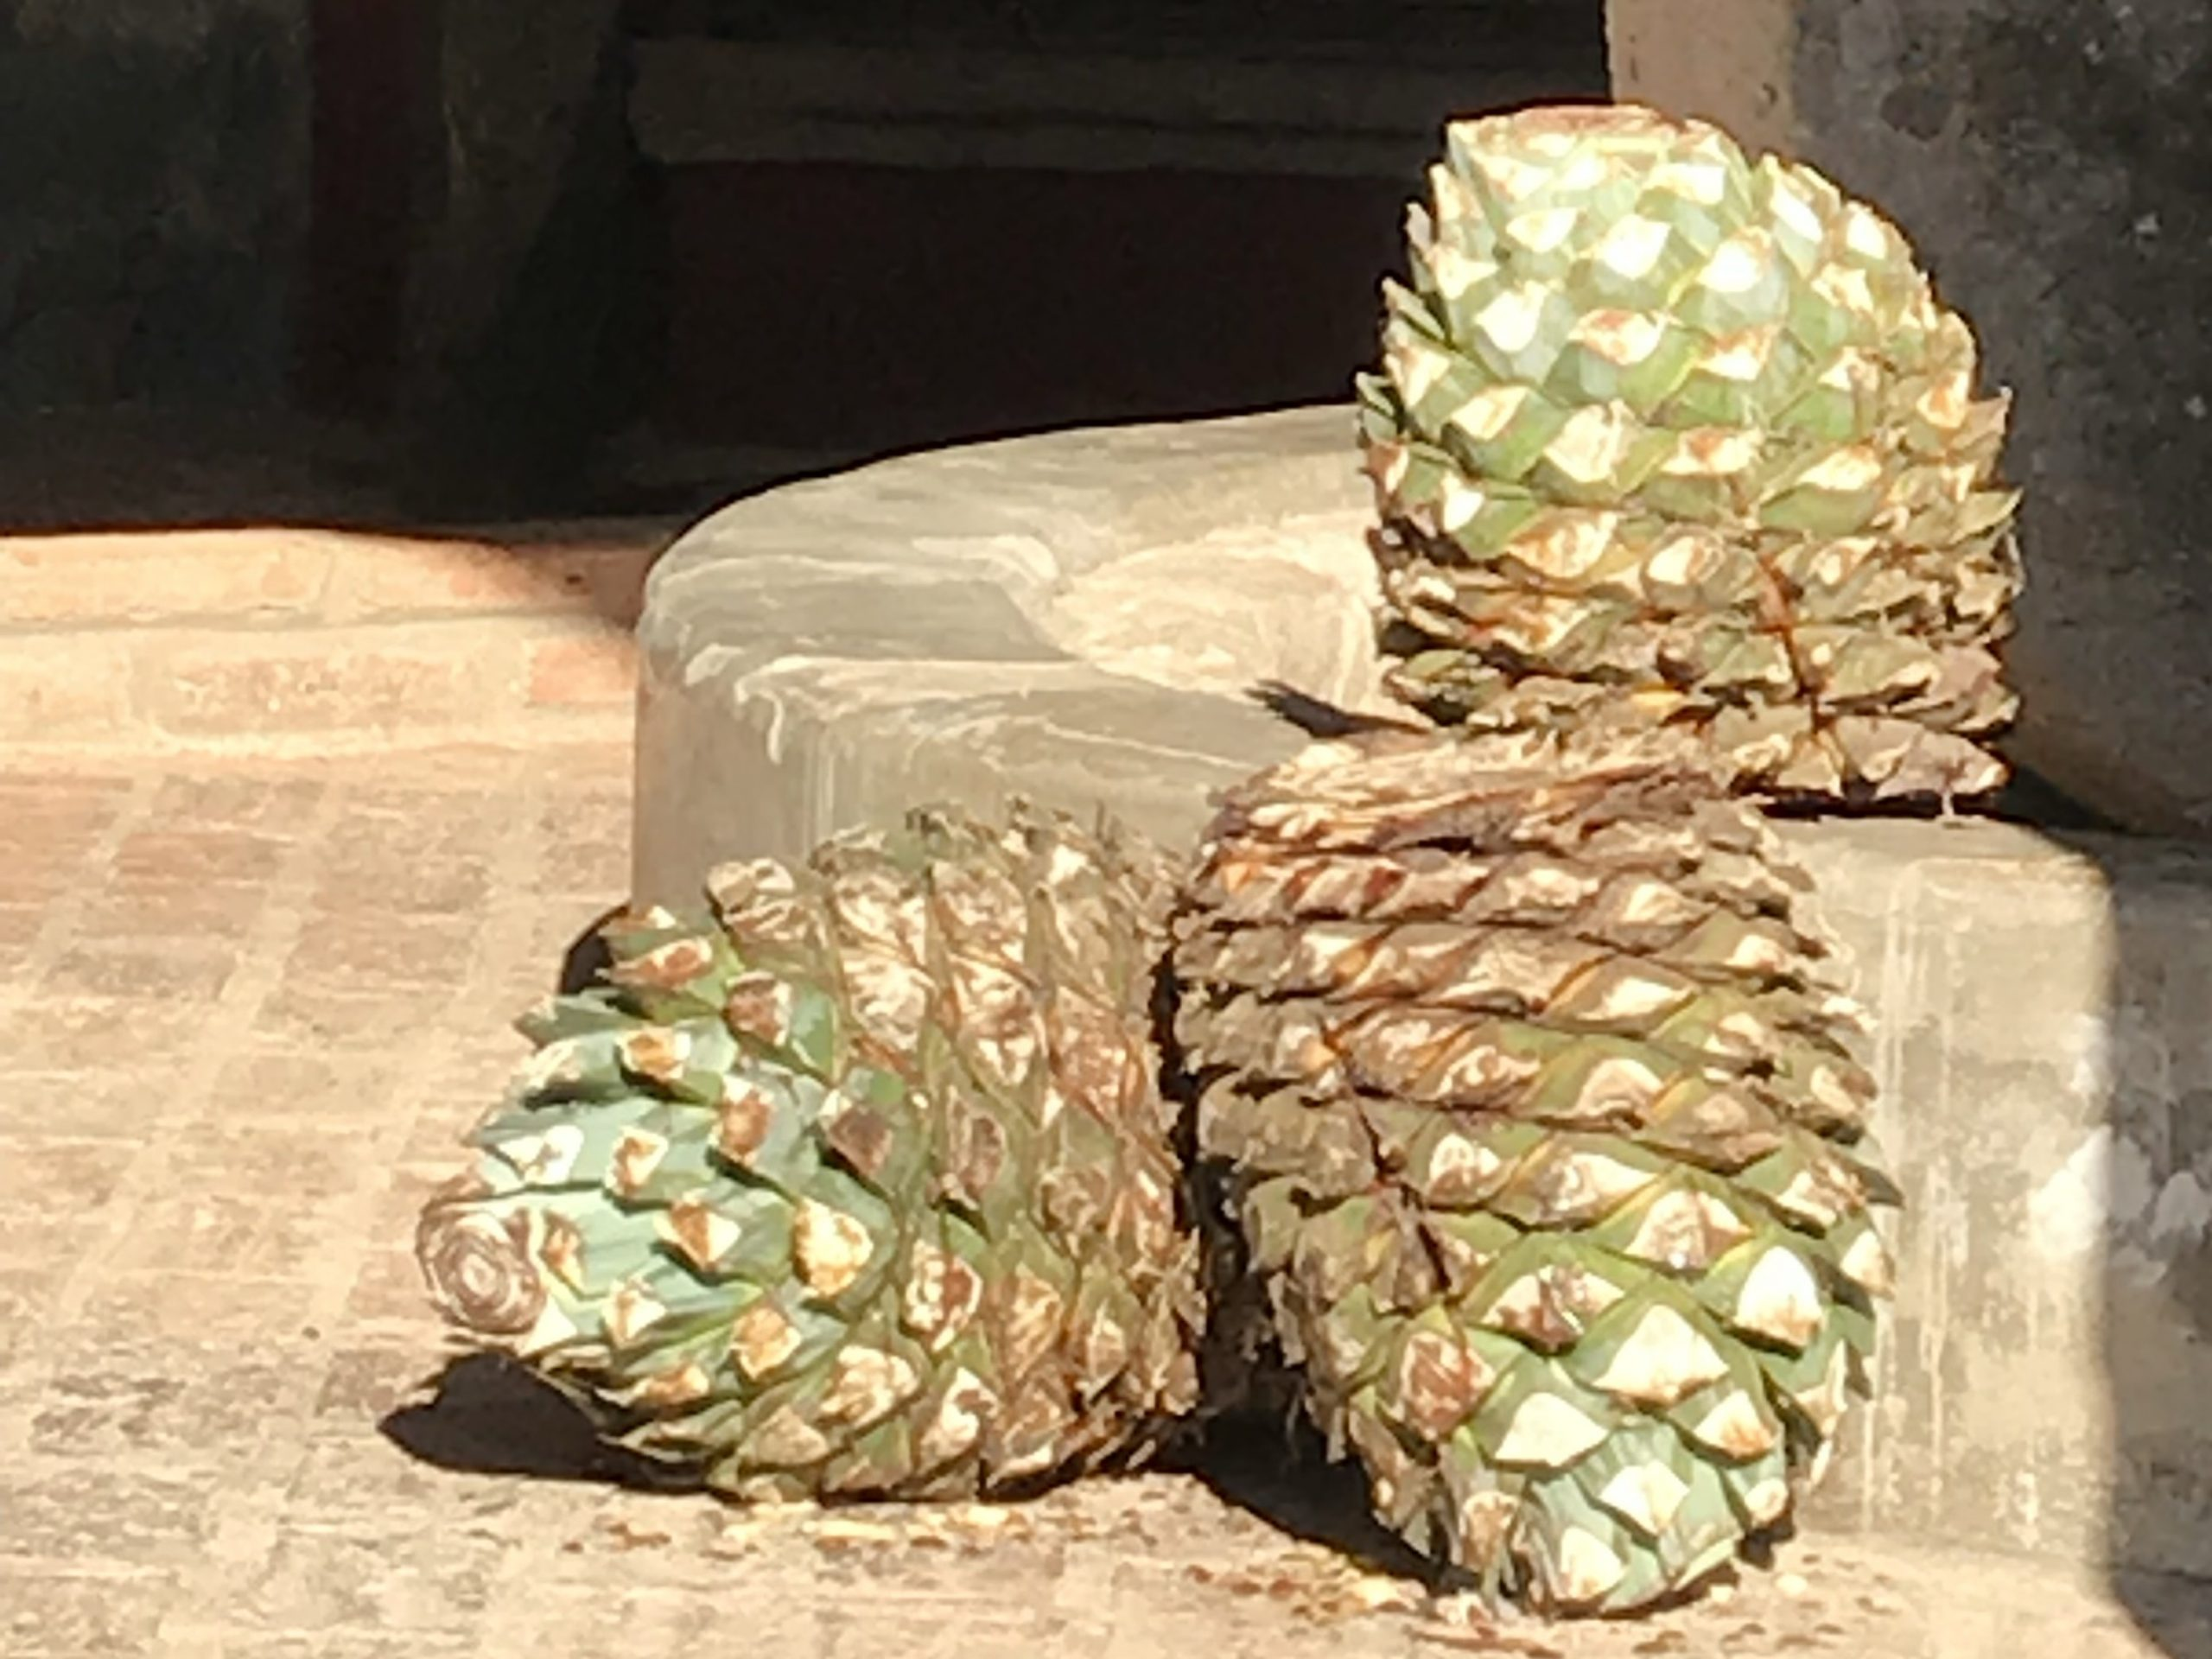 The pina of a blue agave plant for making tequila in Mexico.